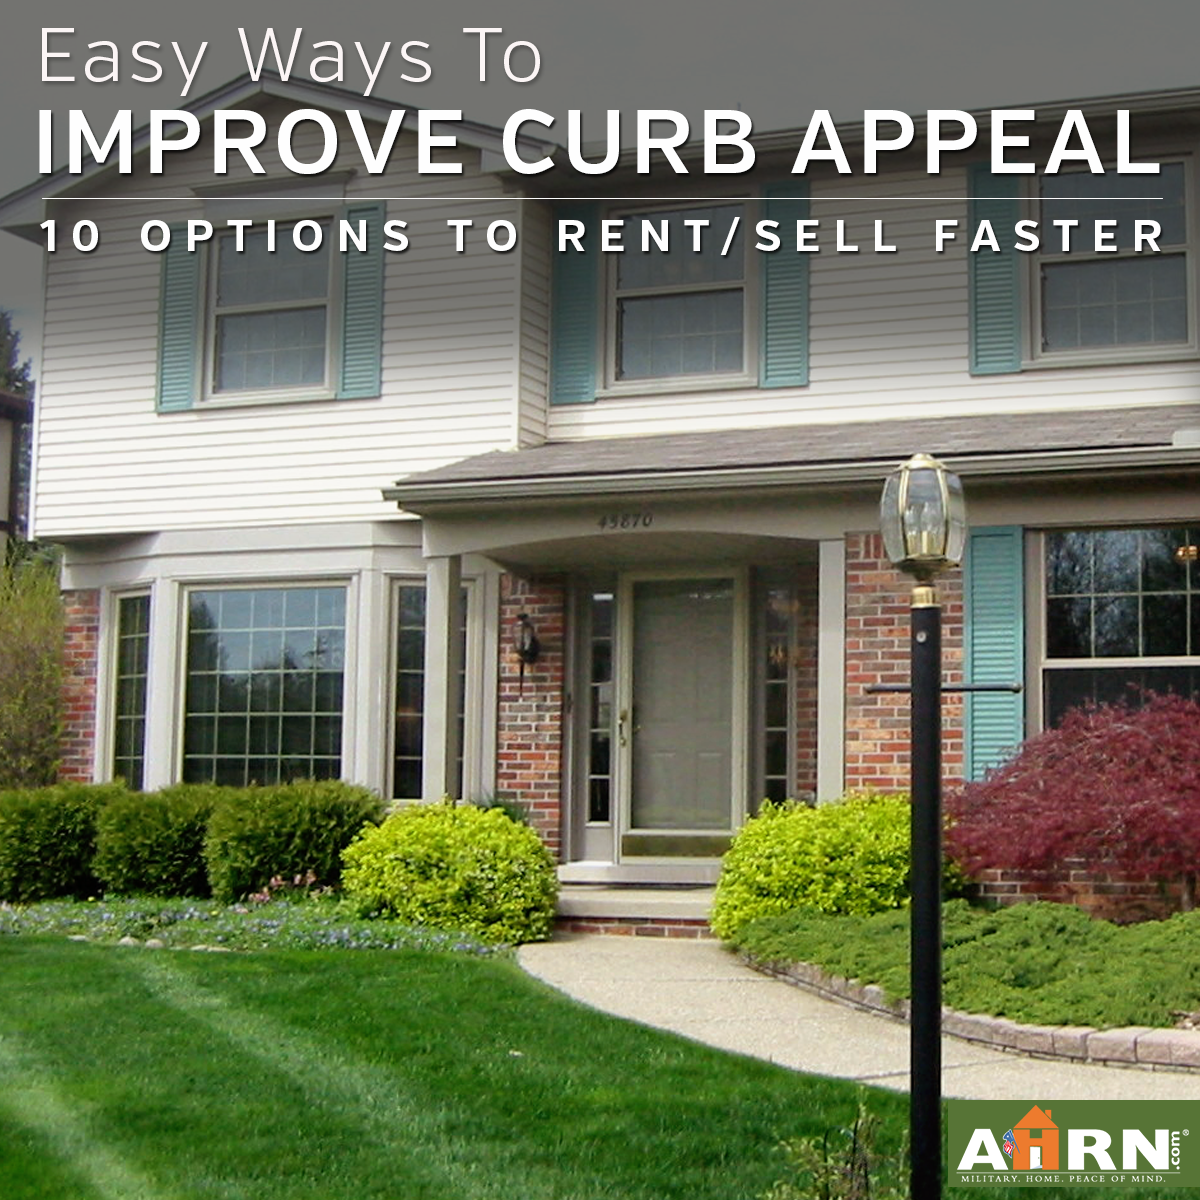 1000 Images About Curb Appeal On Pinterest: 10 Easy Ways To Improve Curb Appeal